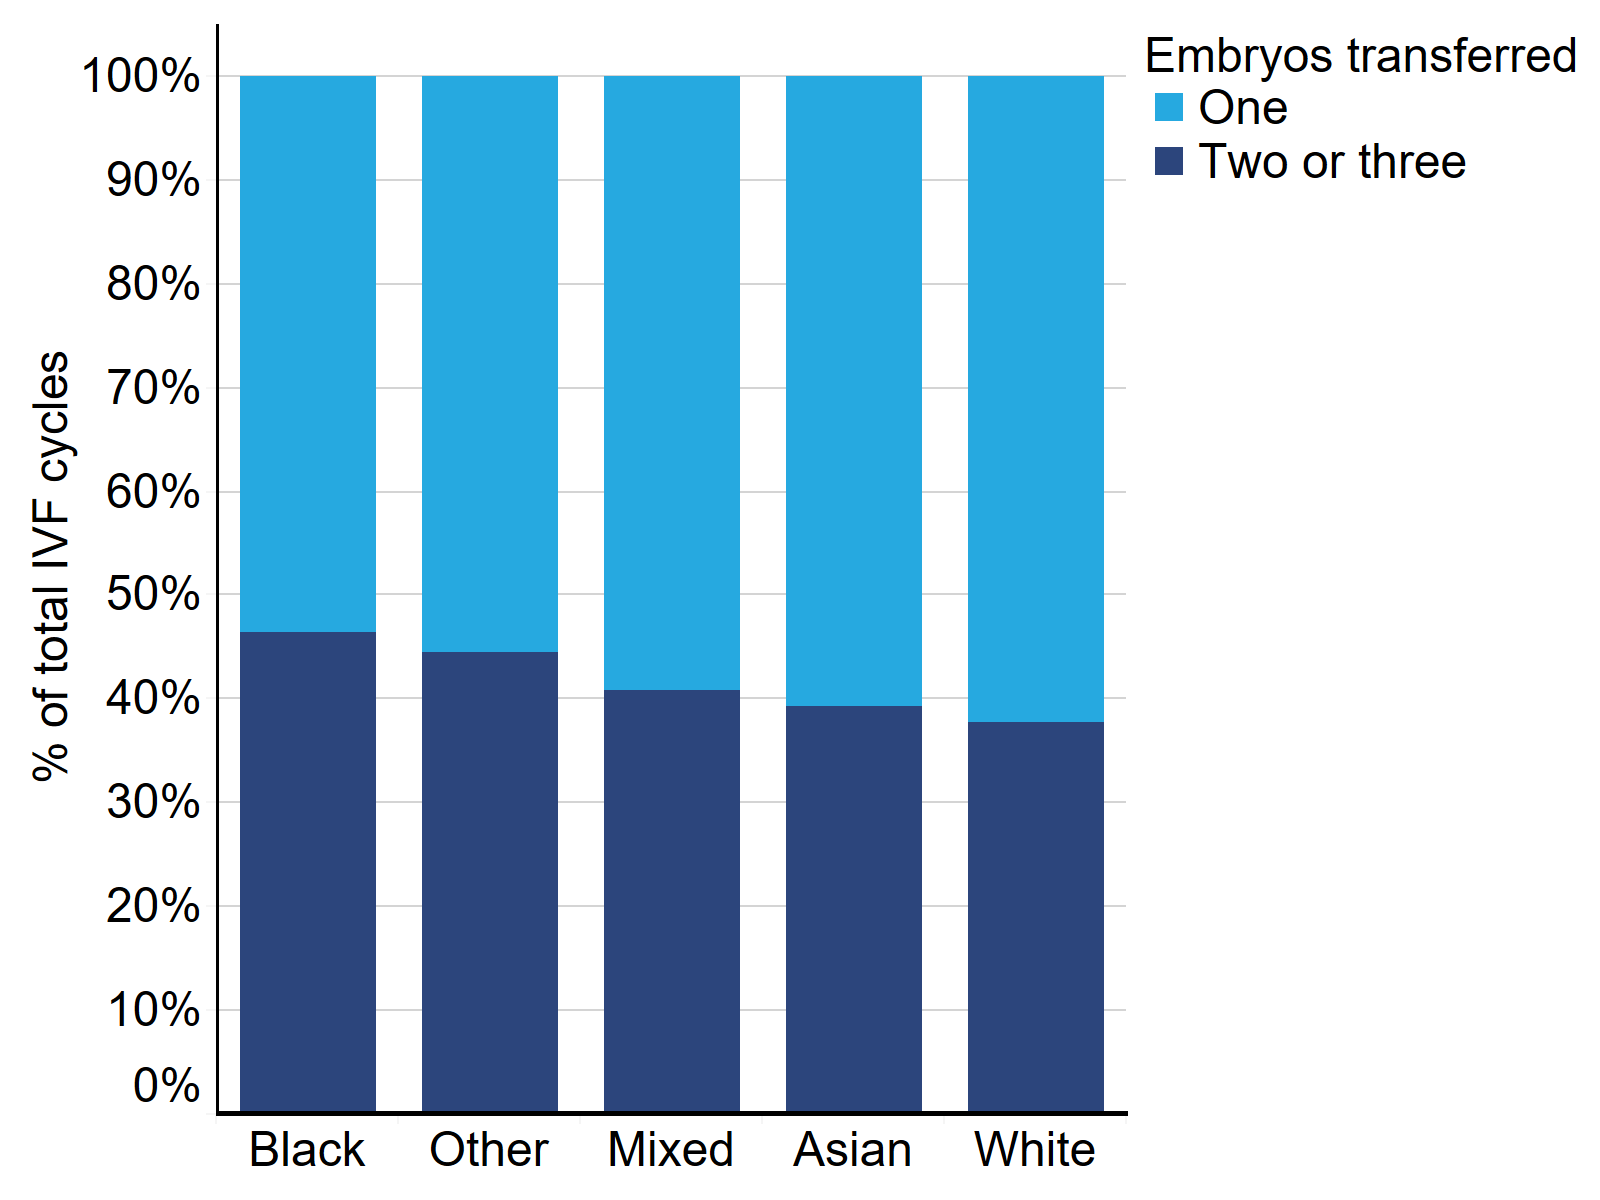 Proportion of single and multiple embryo transfers by patient ethnic groups, 2014-2018. The stacked bar chart shows proportion of cycles in which either one embryo or two/three embryos were transferred for each ethnic group. All ethnic groups had more single embryo transfers than multiple embryo transfers. Black patients had the largest proportion of multiple embryo transfers (46% of all cycles) followed by Other (45%), Mixed (41%), Asian (39%) and White (38%).